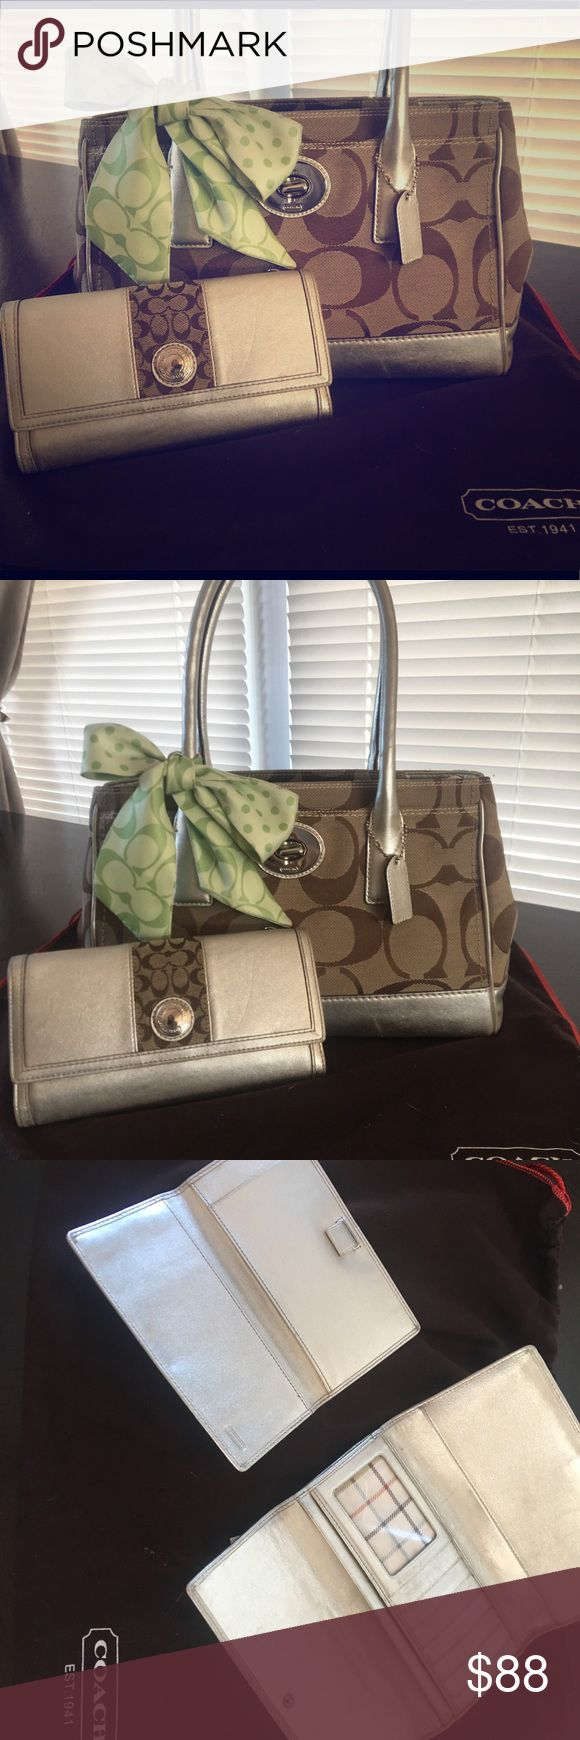 Coach Purse and Wallet Set 💚EXCELLENT Condition💚 Price reduced!  Beautiful Coach Purse AND matching Wallet.  Jacquard canvas and leather trim.  Normal wear and tear.  No rips, tears or stains.  💚 Make me an offer!  I do bundle discounts and include a surprise in each package shipped 🎁 Coach Bags Shoulder Bags